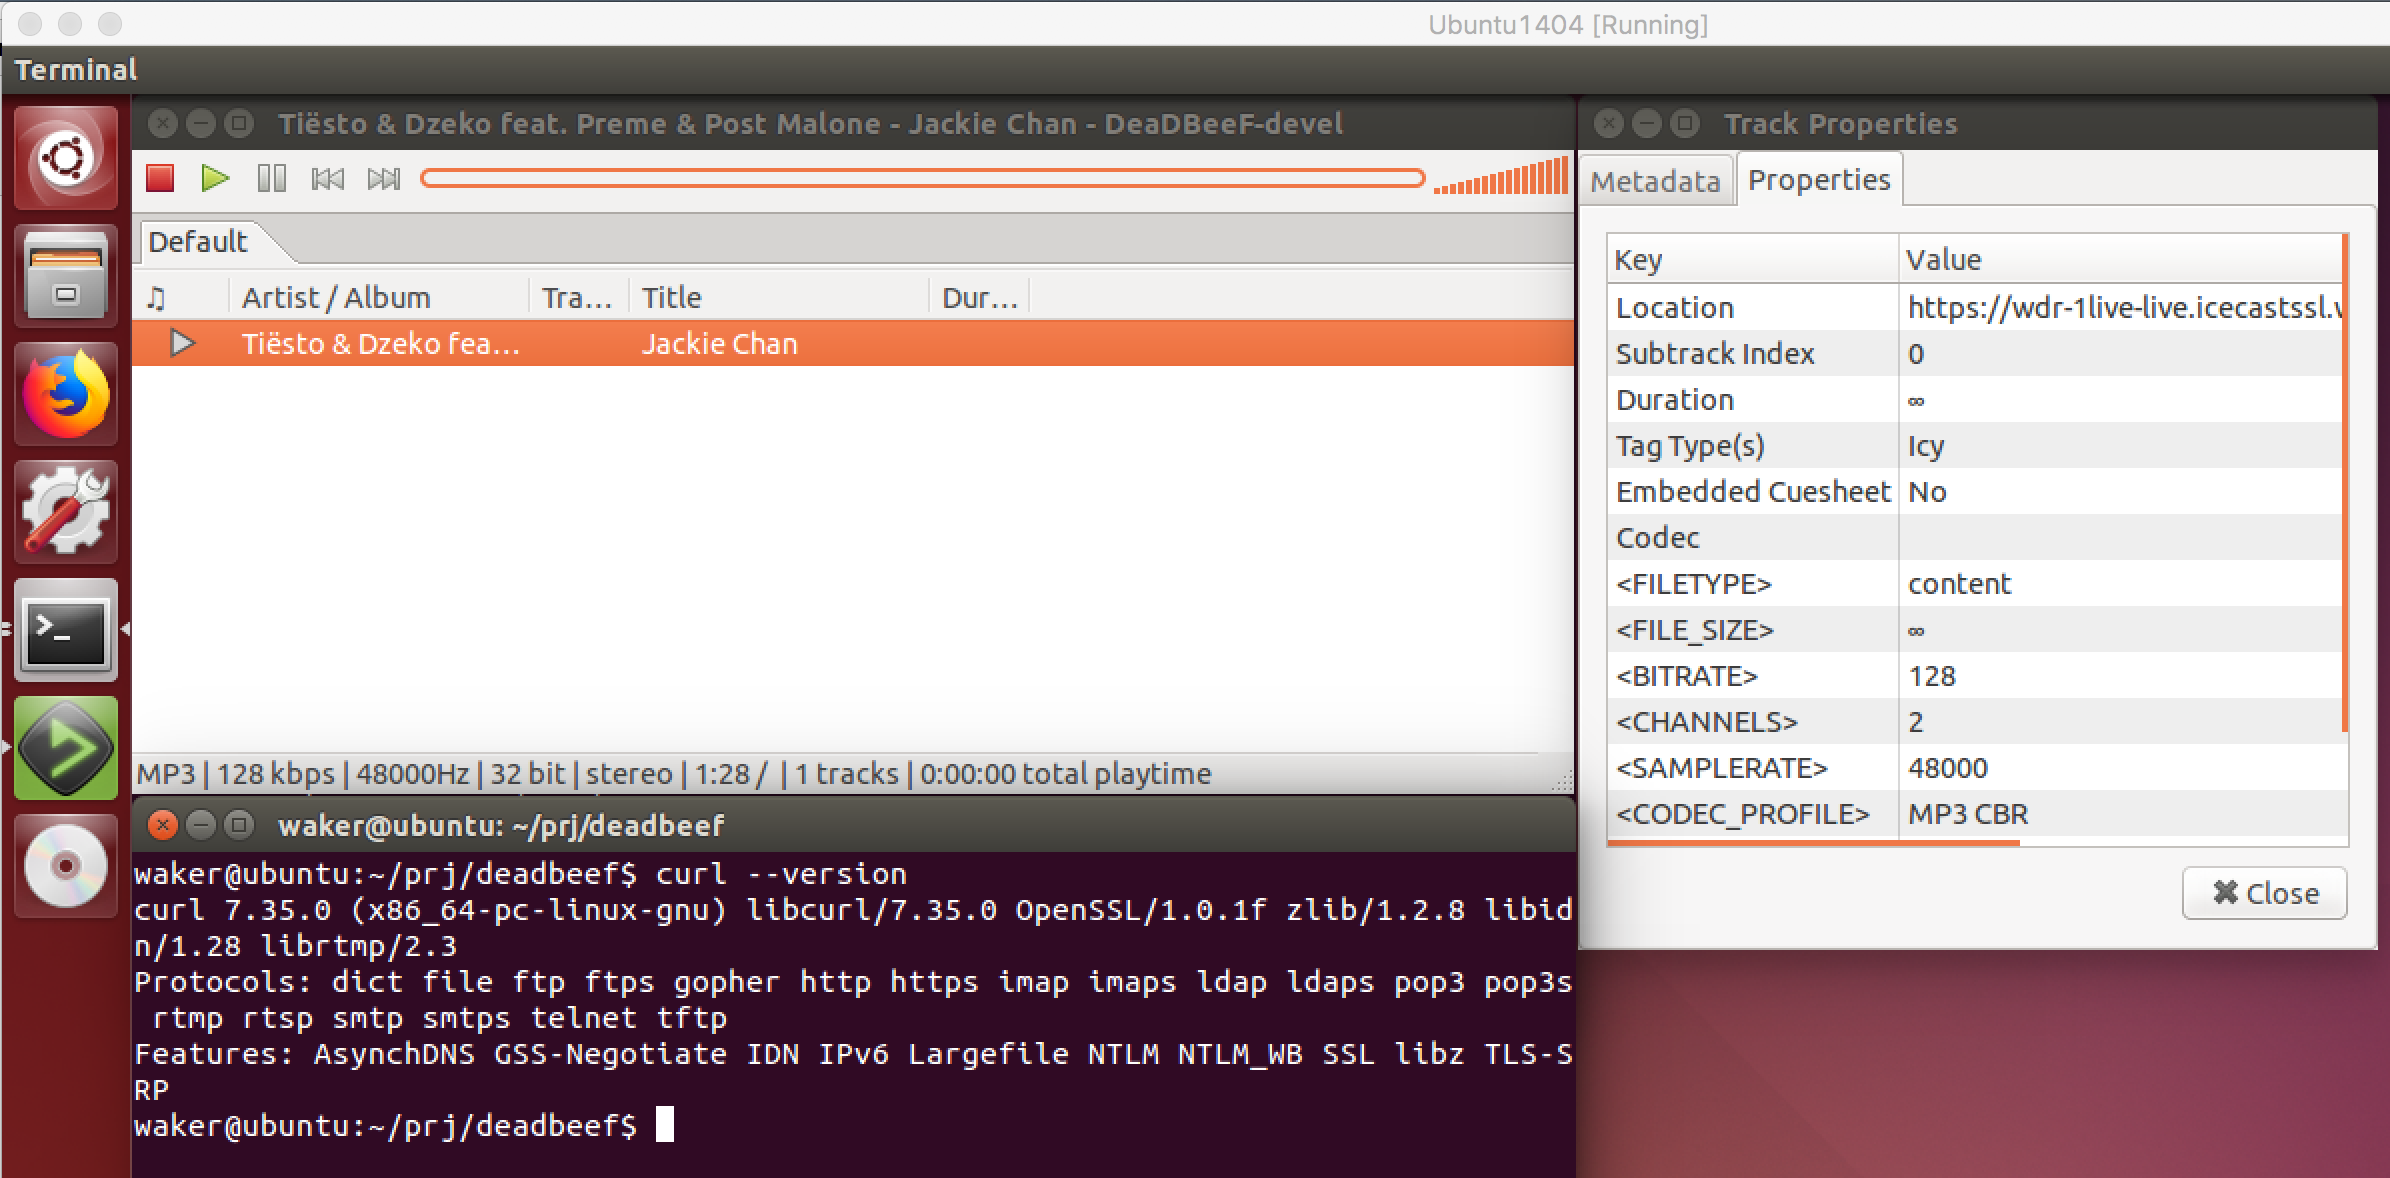 Gentoo] Playing HTTPS streams stops with an error after a